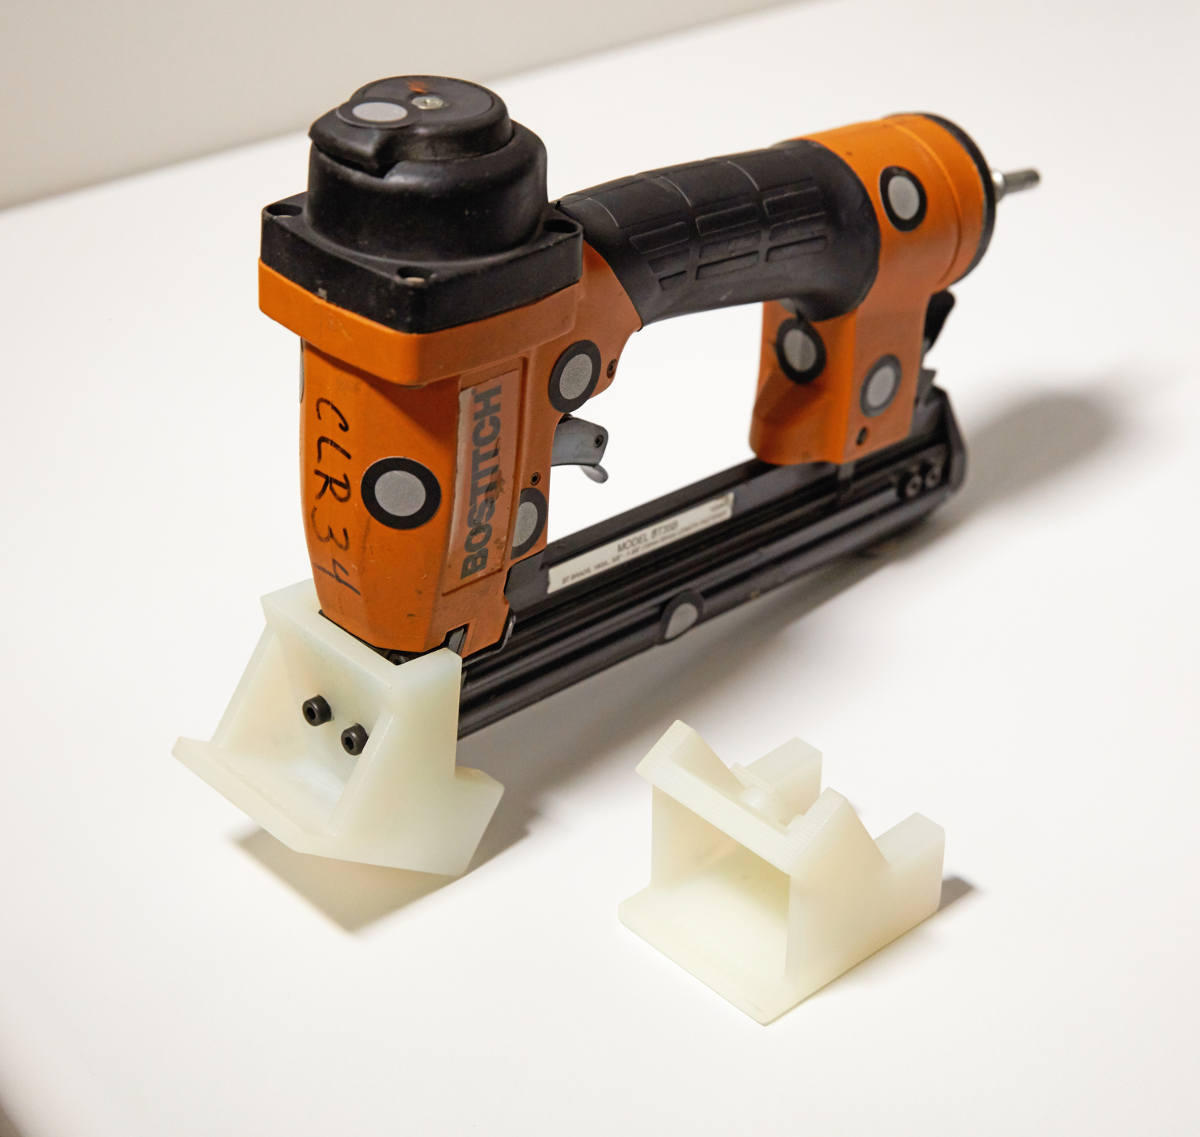 ashley-furniture-pin-tack-gun-3d-printed-in-durable-resin.jpg